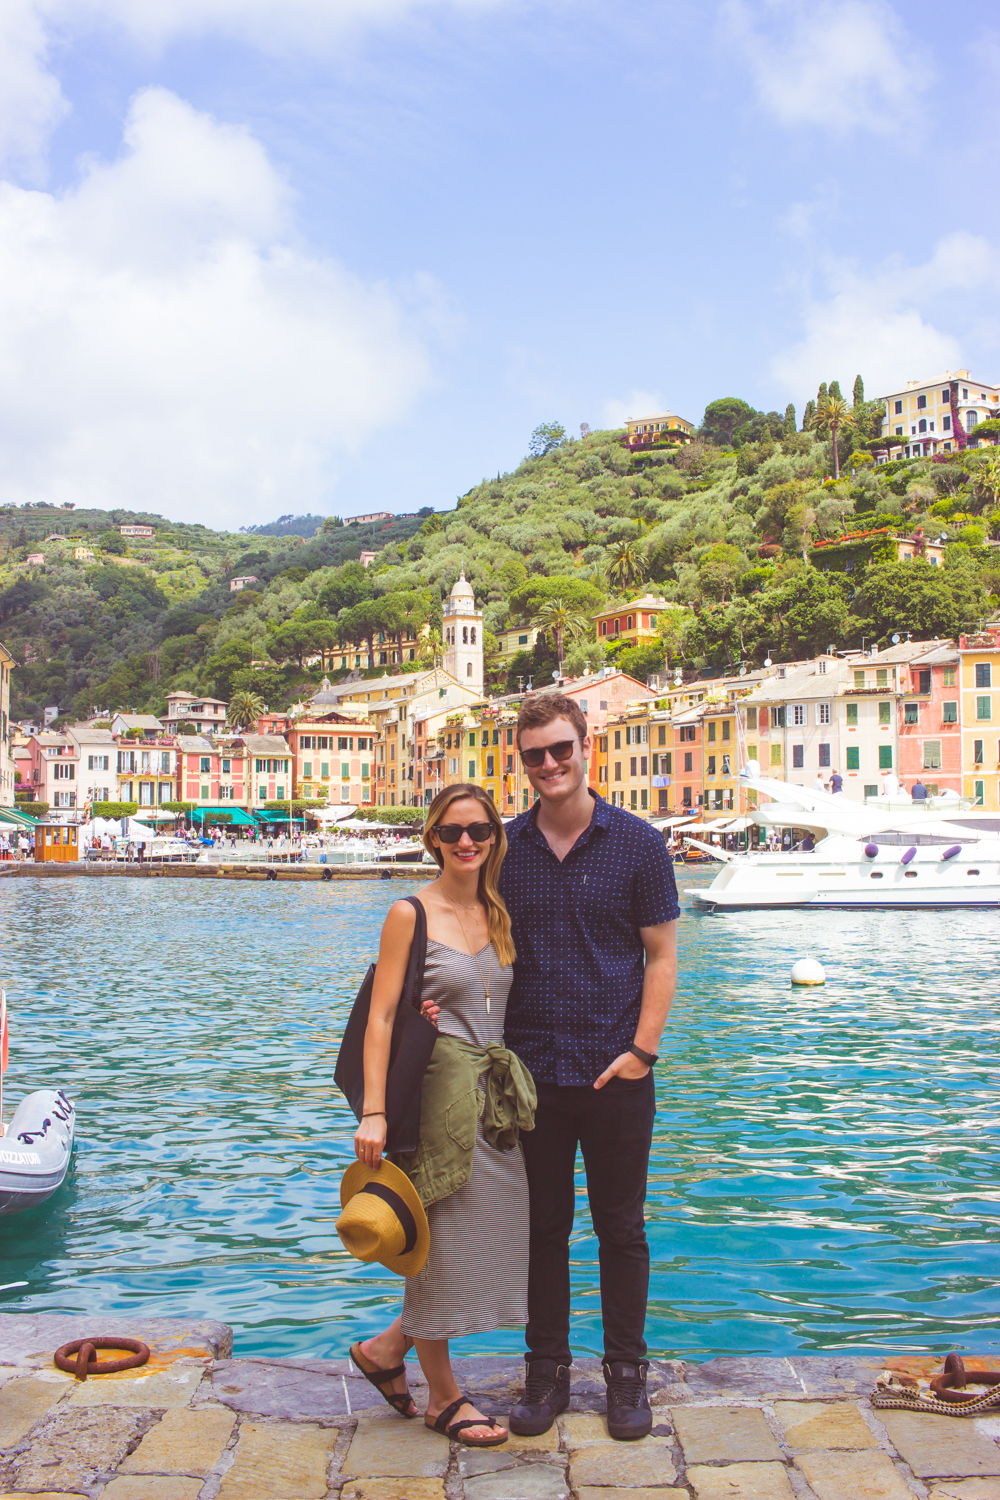 livvyland-blog-olivia-watson-austin-texas-fashion-travel-blogger-princess-royal-mediterranean-cruise-portofino-cinque-terre-italy-what-to-do-see-eat-11